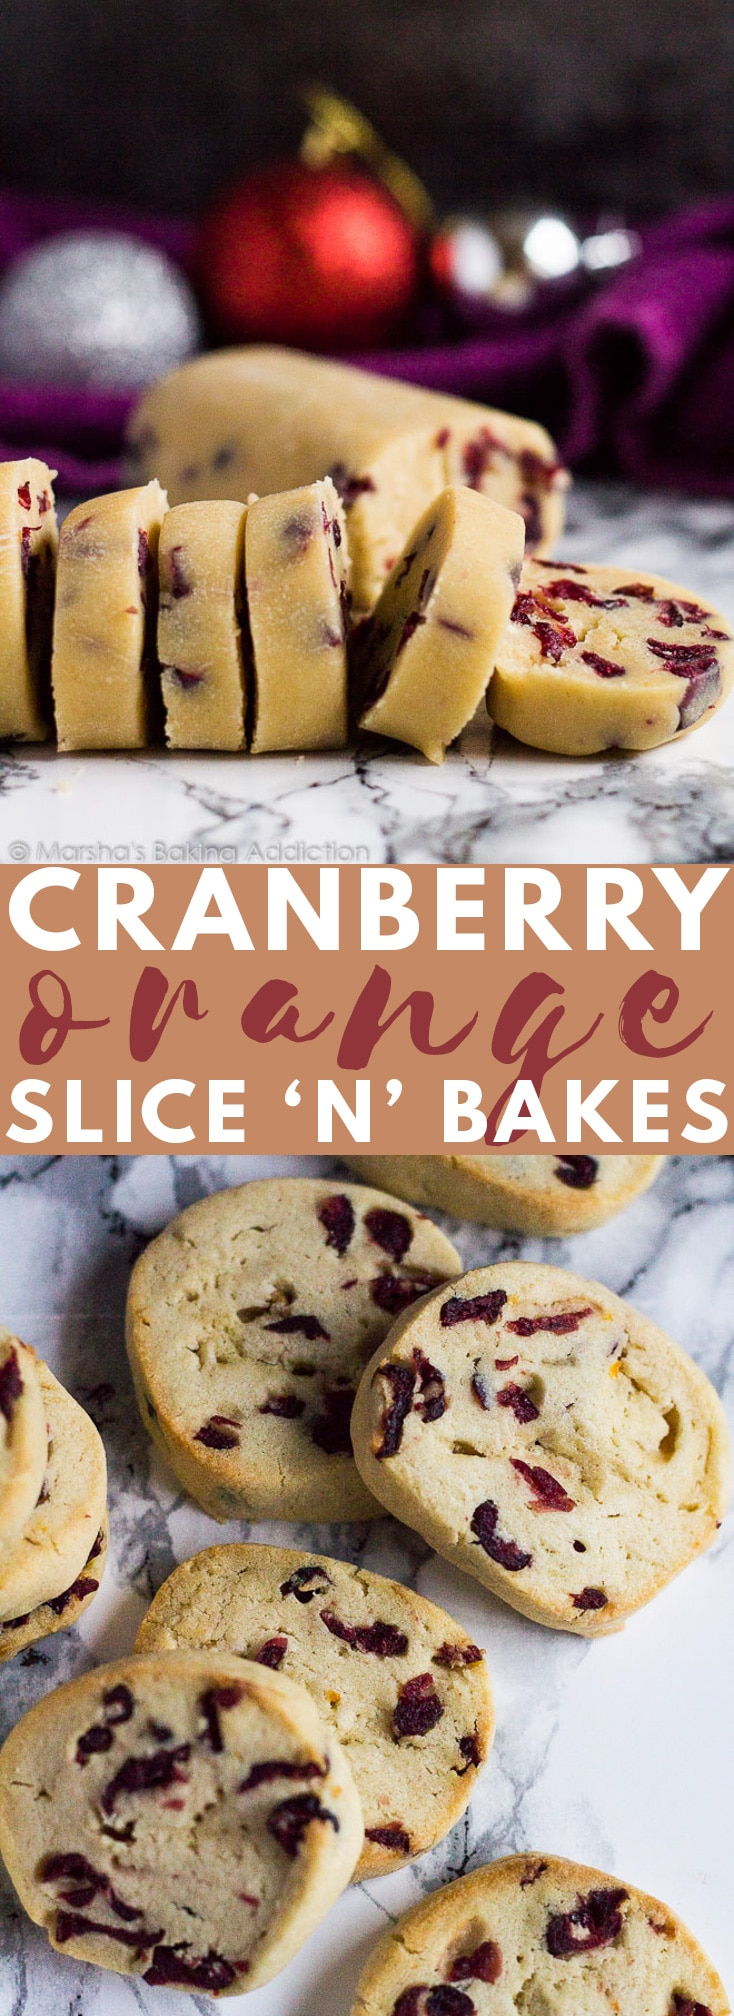 Cranberry Orange Slice 'n' Bake Cookies- Deliciously soft and thick, melt-in-your-mouth orange-infused cookies studded with sweet dried cranberries! #cranberry #orange #cookies #cookierecipes #christmascookies